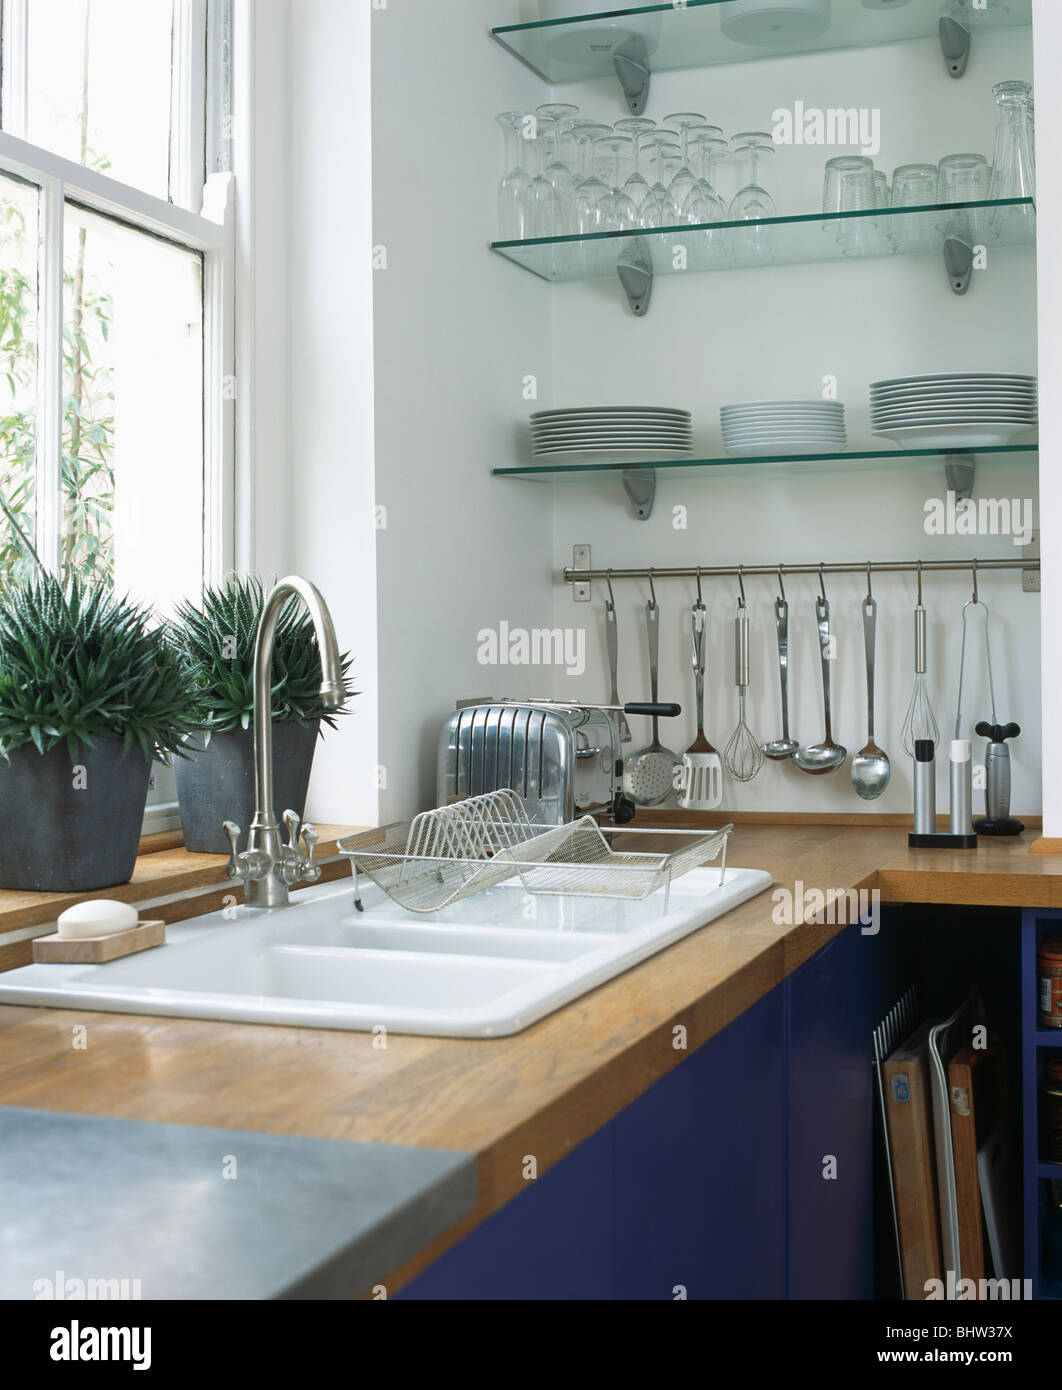 Modern kitchen shelves - Double White Sink Below Window In Modern Kitchen With Glass Shelves Above Steel Utensils On Metal Storage Rack